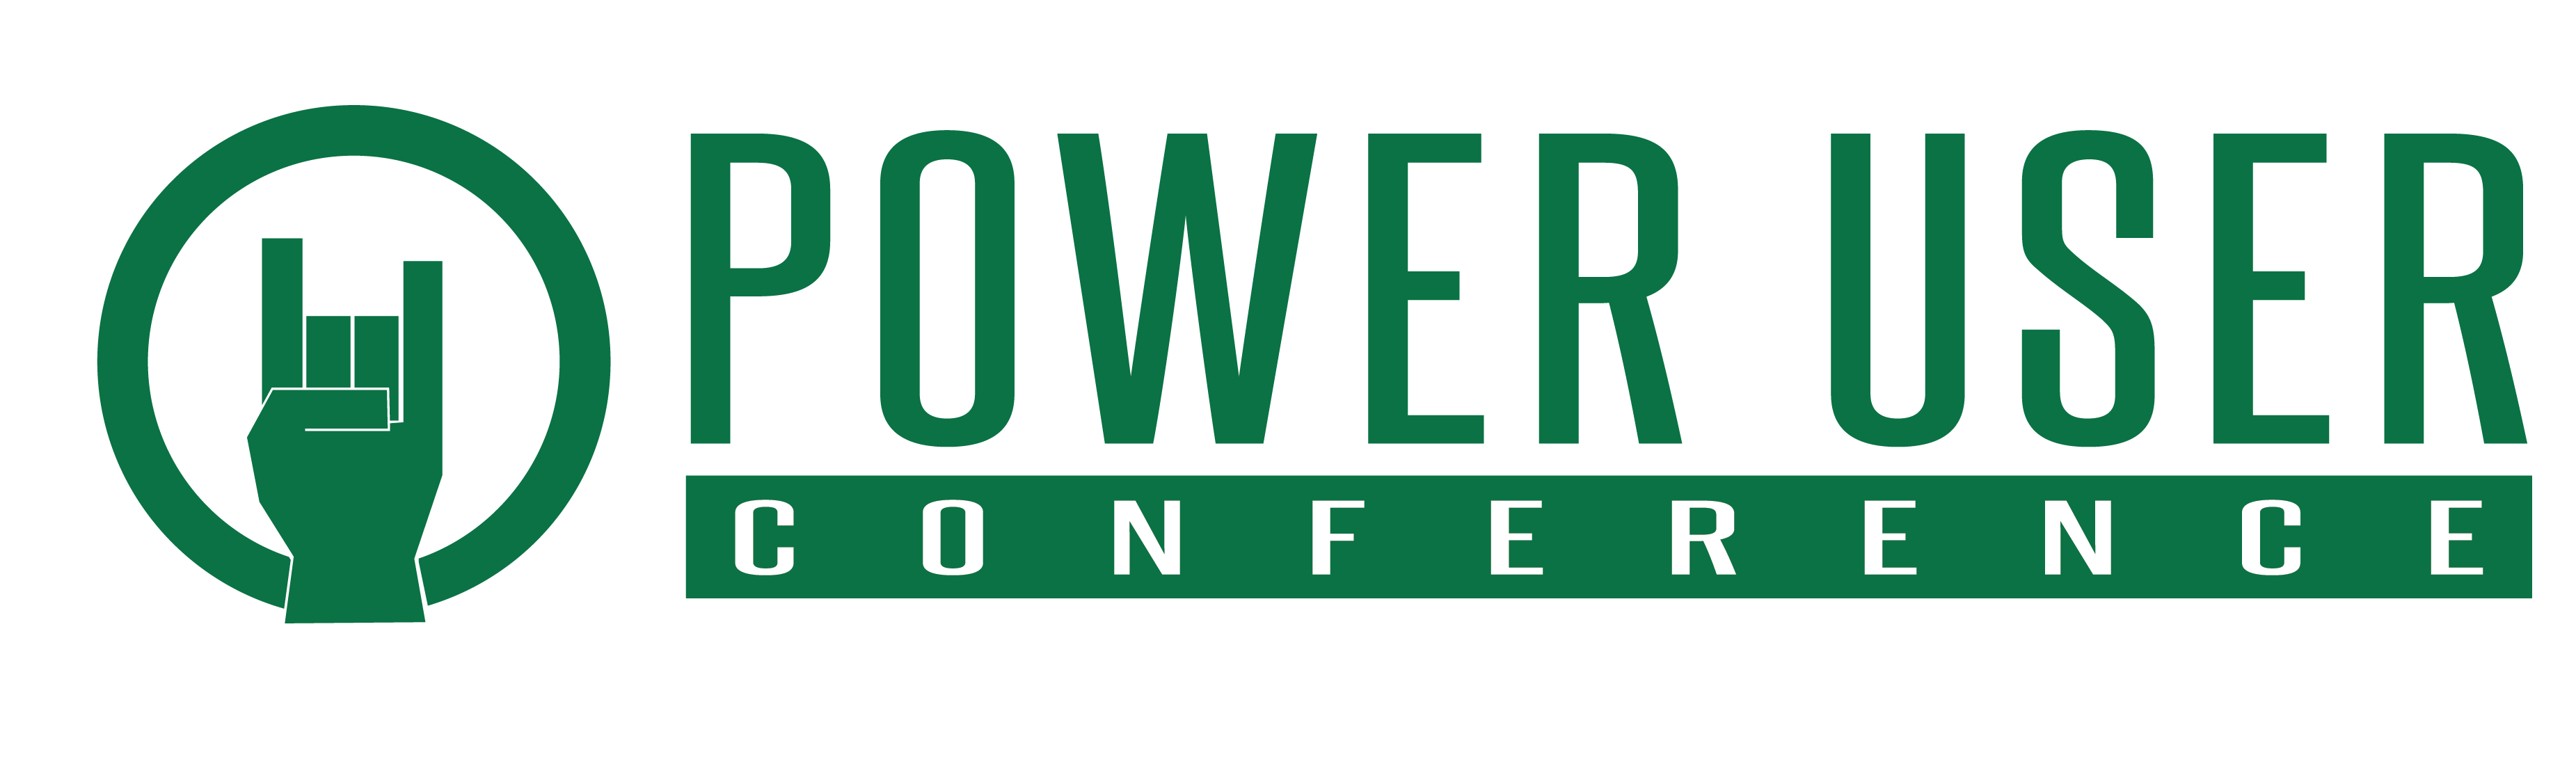 Power User Conference 2016